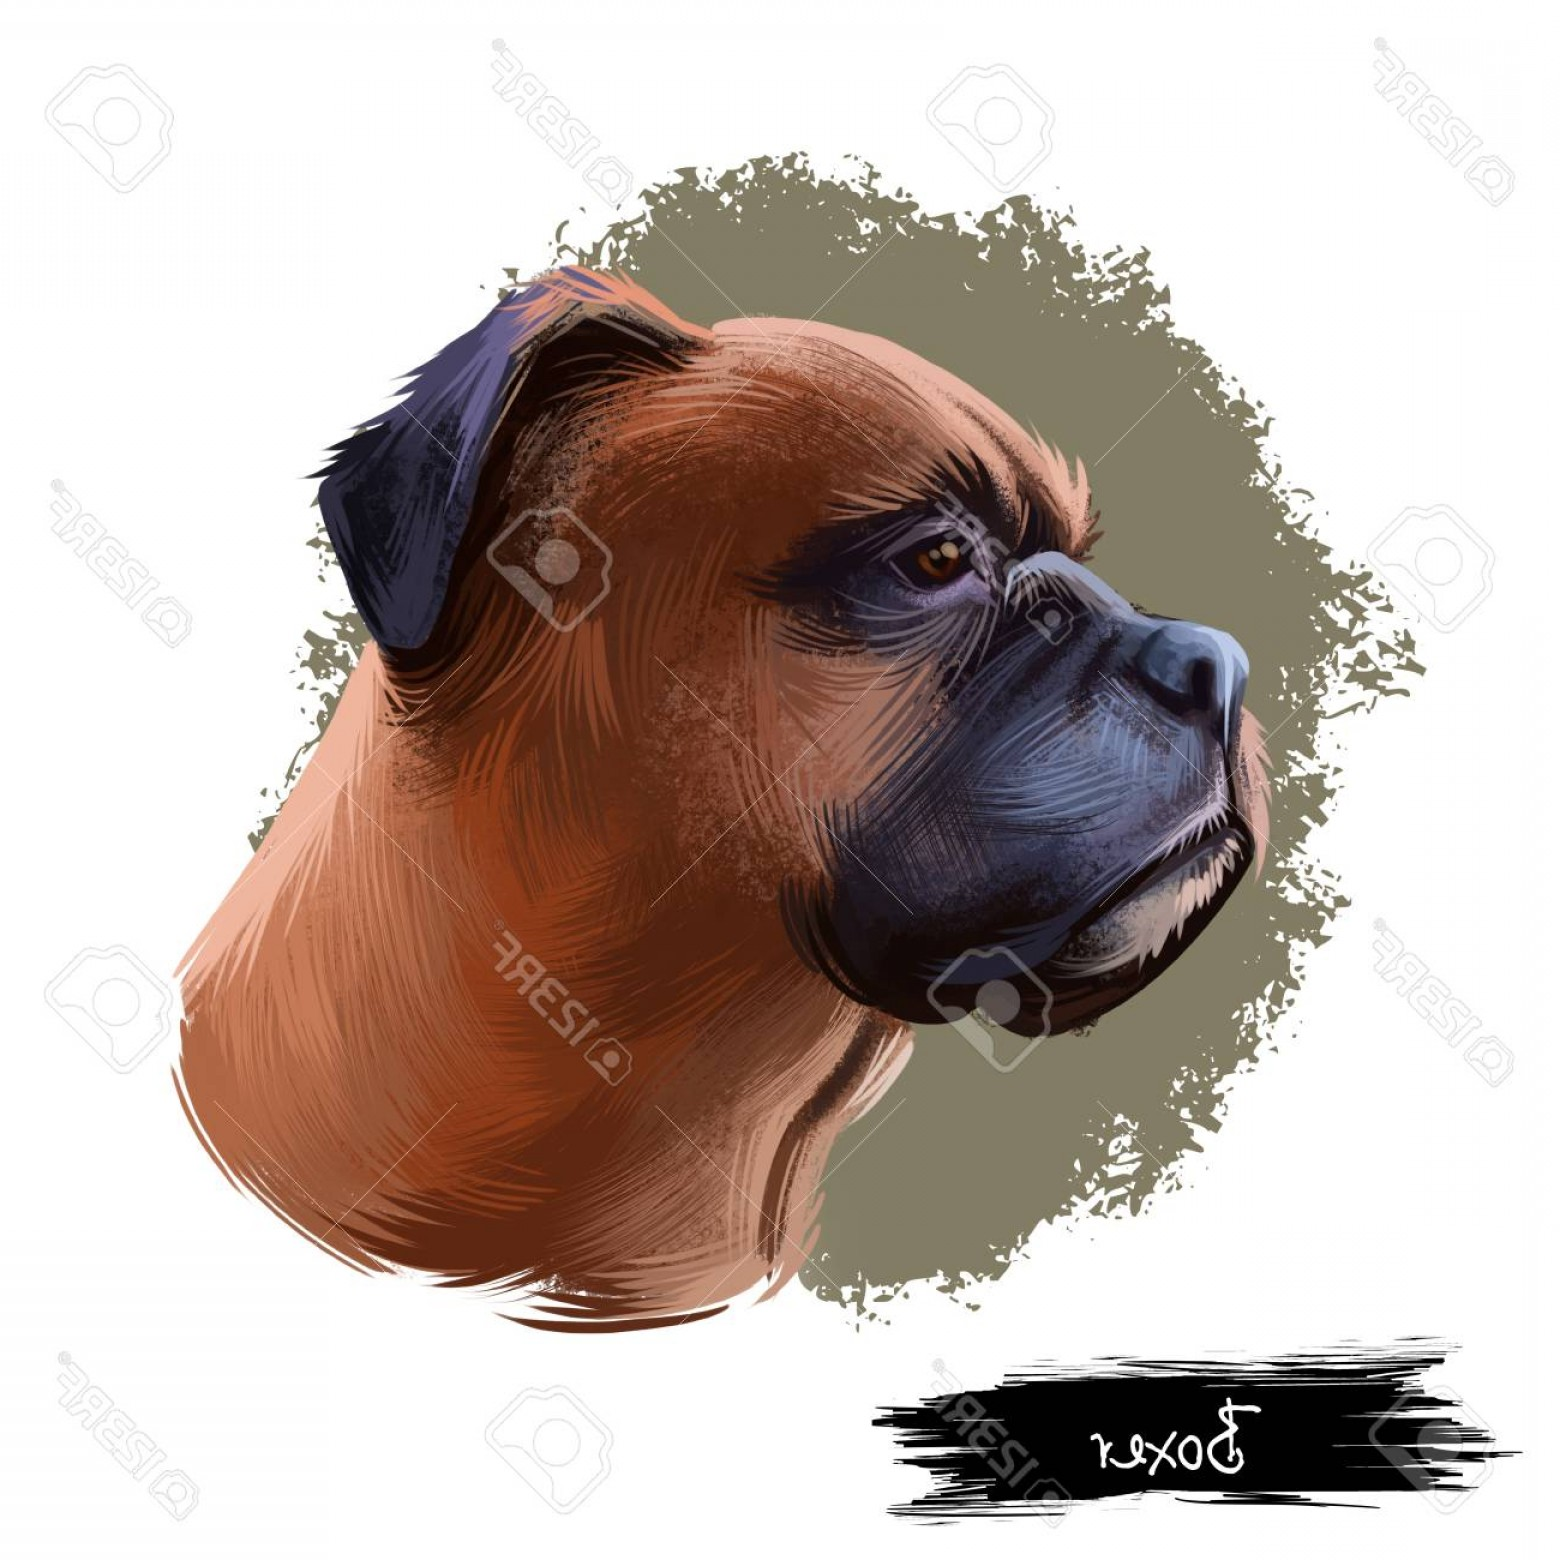 Double Boxer Dog Vector: Photostock Illustration Boxer Dog Breed Isolated On White Background Digital Art Illustration Medium Sized Short Haired Bree